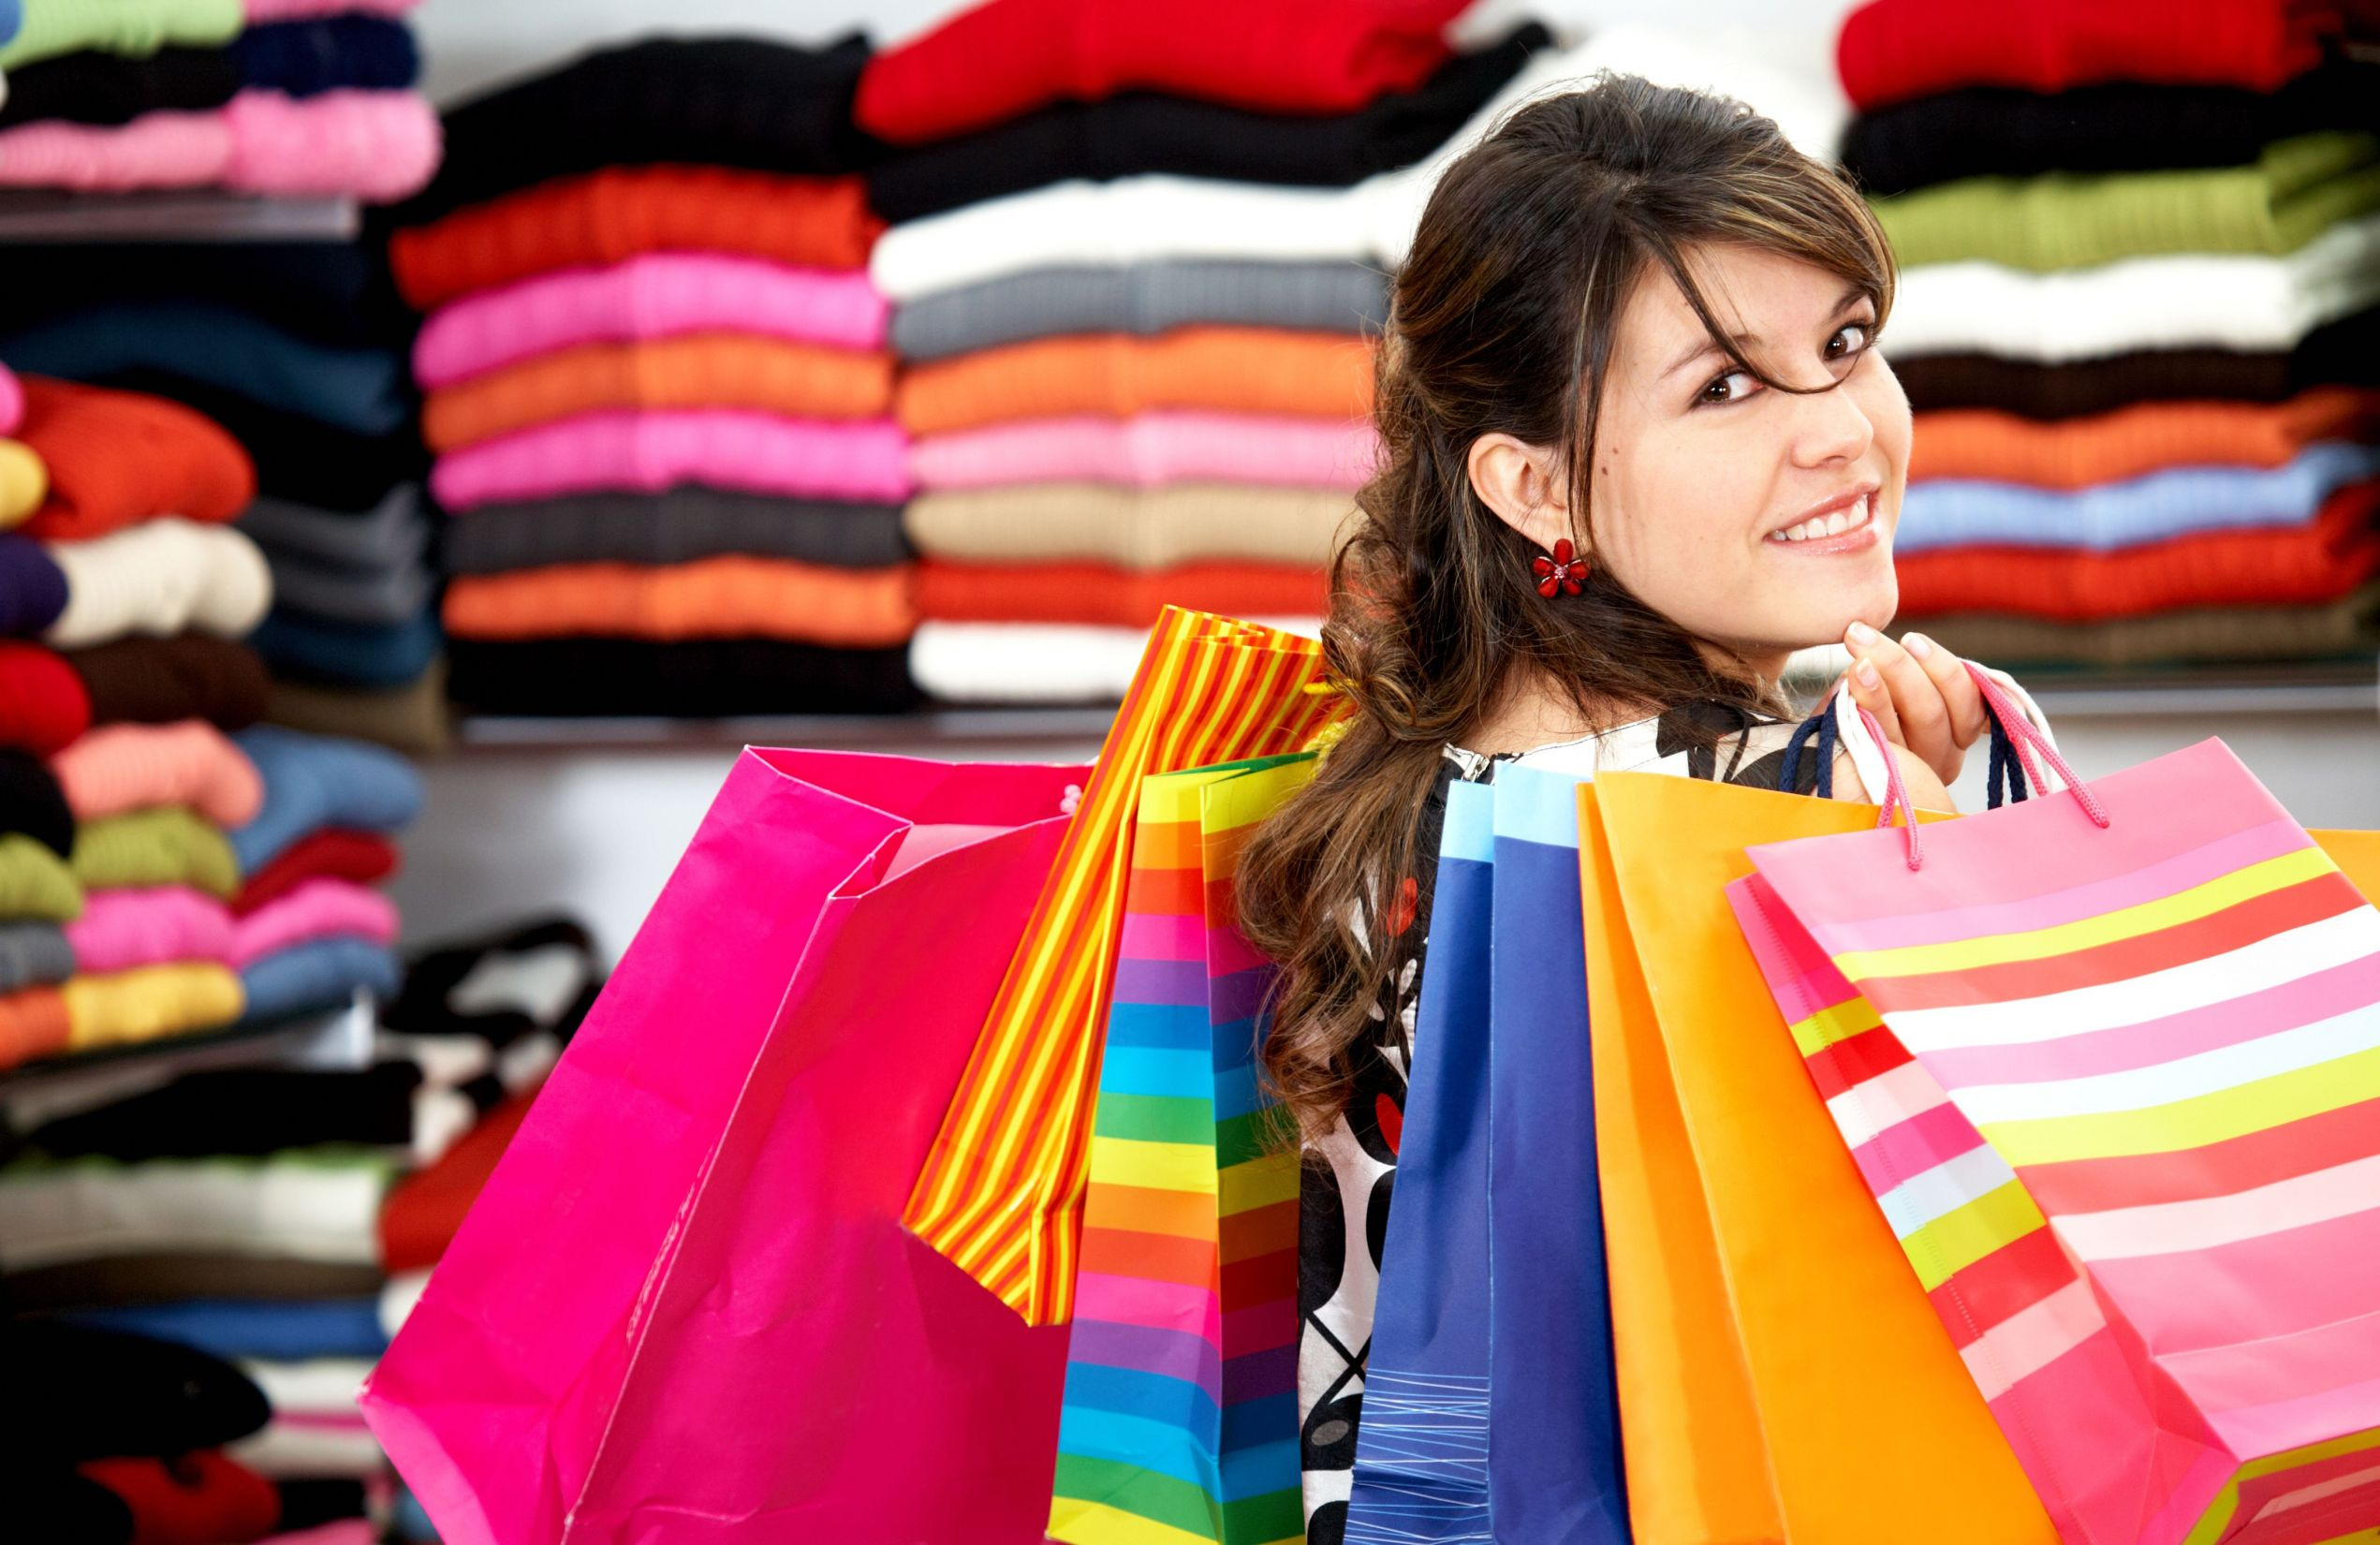 find and essay on going shopping